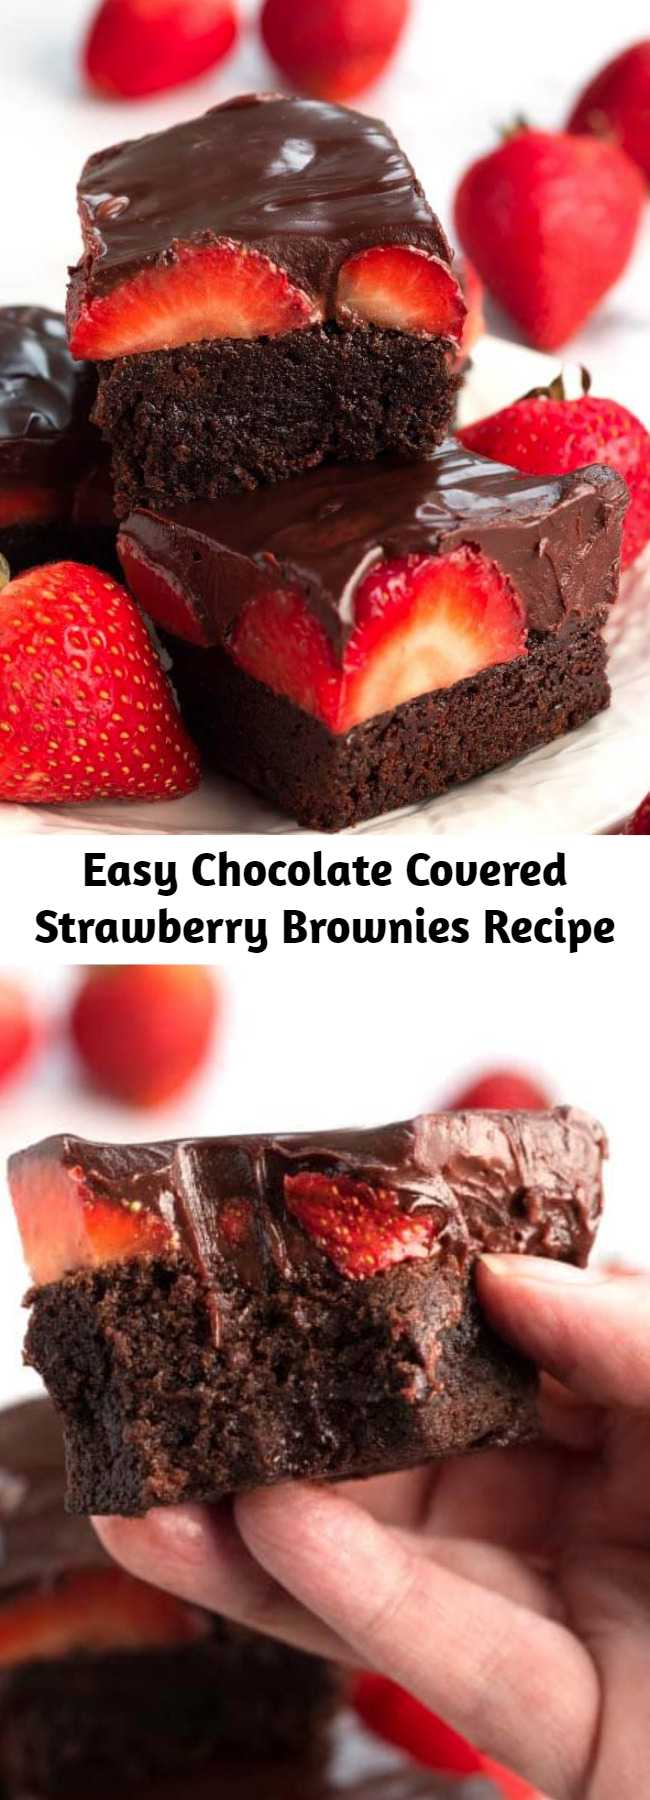 Easy Chocolate Covered Strawberry Brownies Recipe - Chocolate Covered Strawberry Brownies are a delicious, chocolatey dessert recipe. If you like rich, chocolate brownies, then you will love these chocolate ganache strawberry covered brownies! #brownies #chocolate #chocolatecoveredstrawberries